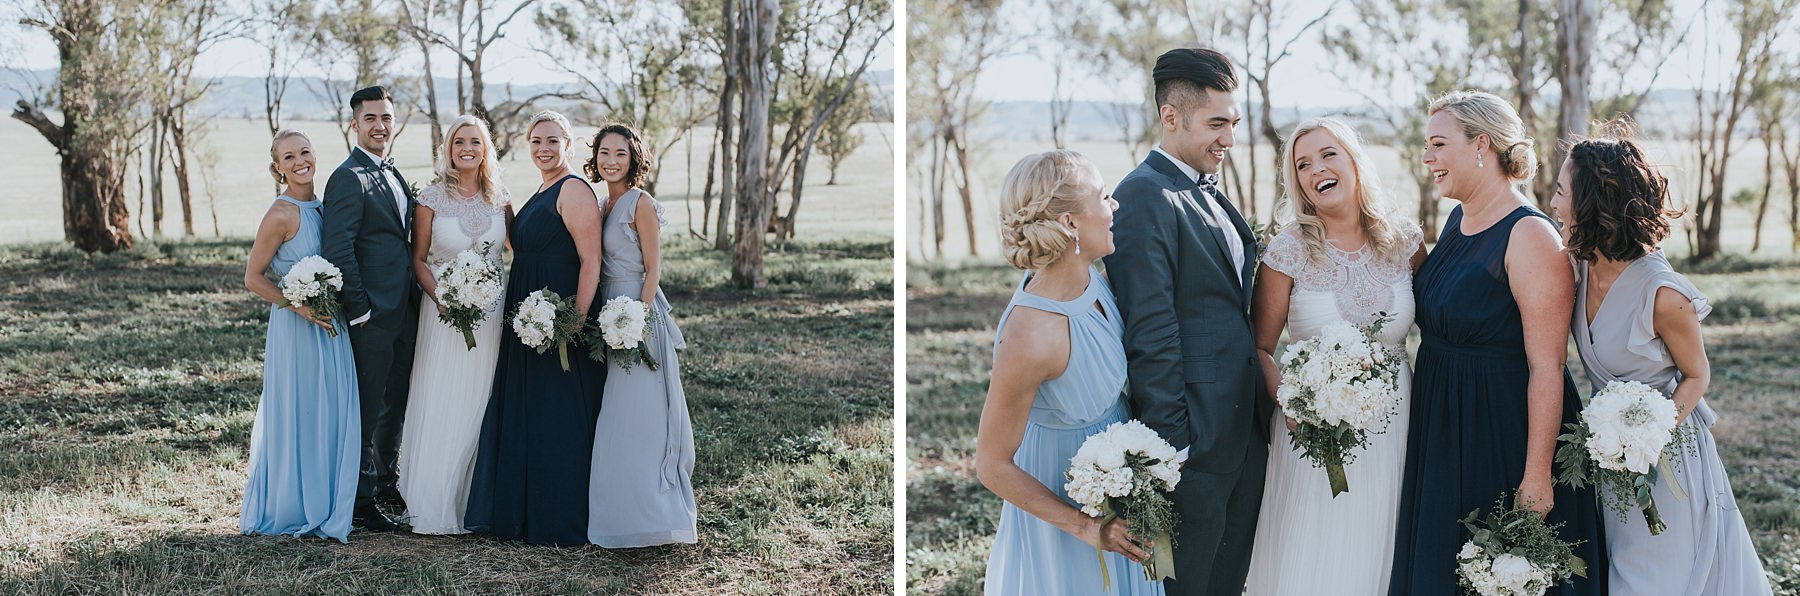 mudgee bridal party photos